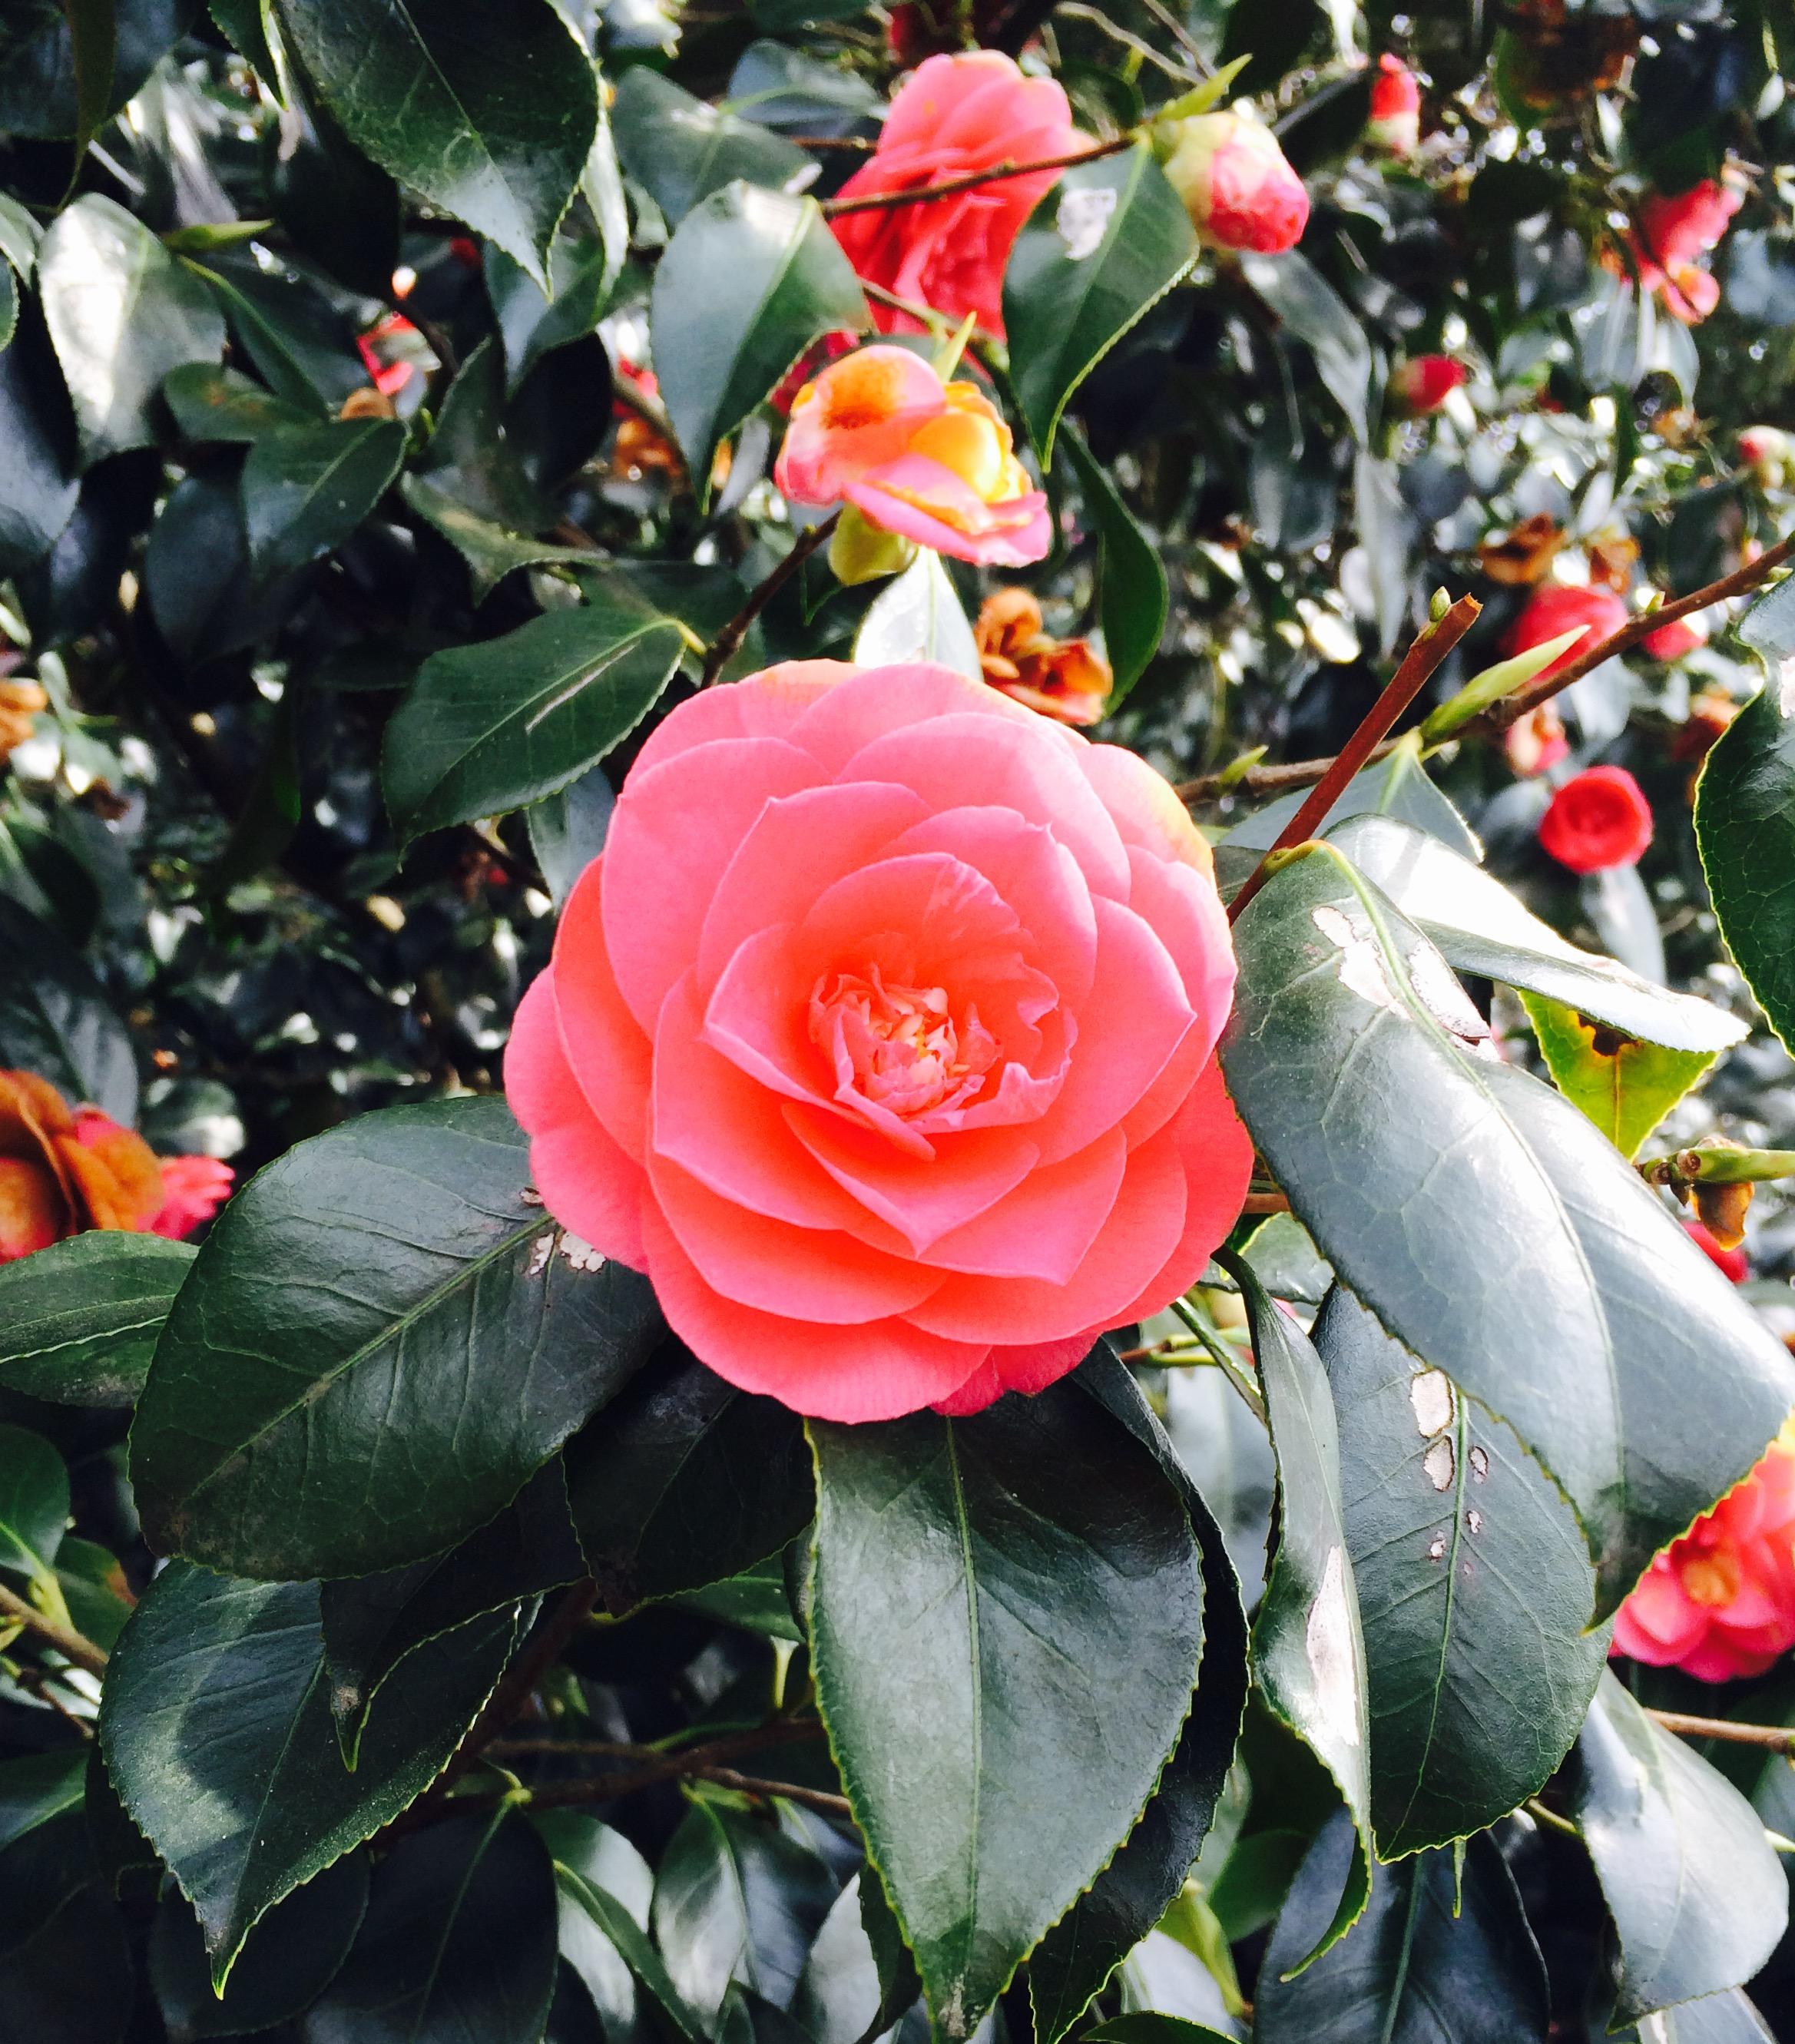 'Rose in bloom'  By Charlotte